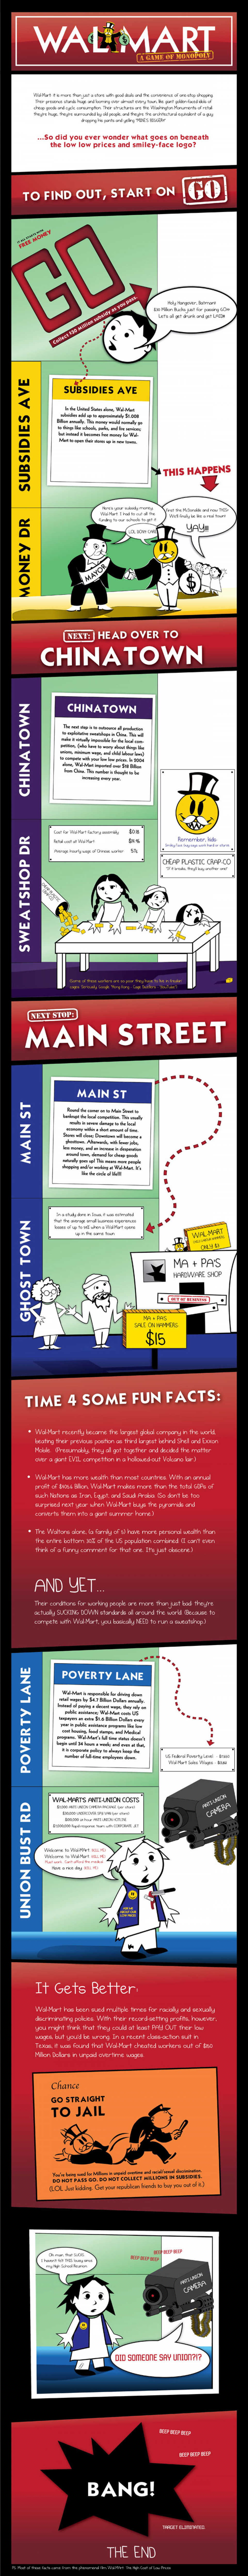 WAL MART: A Game of Monopoly Infographic